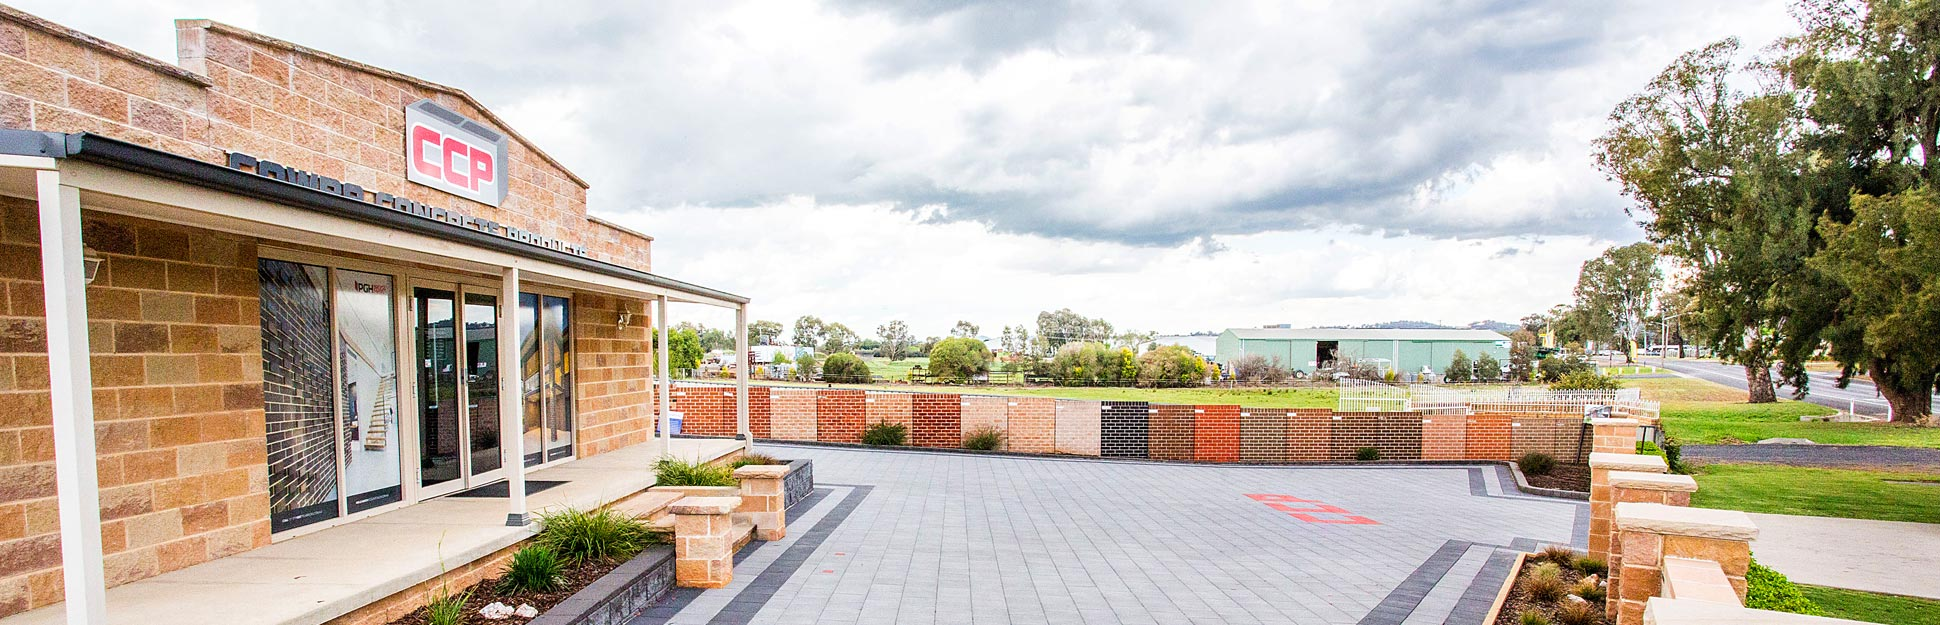 Cowra Concrete Products head office and showroom for quality concrete masonry